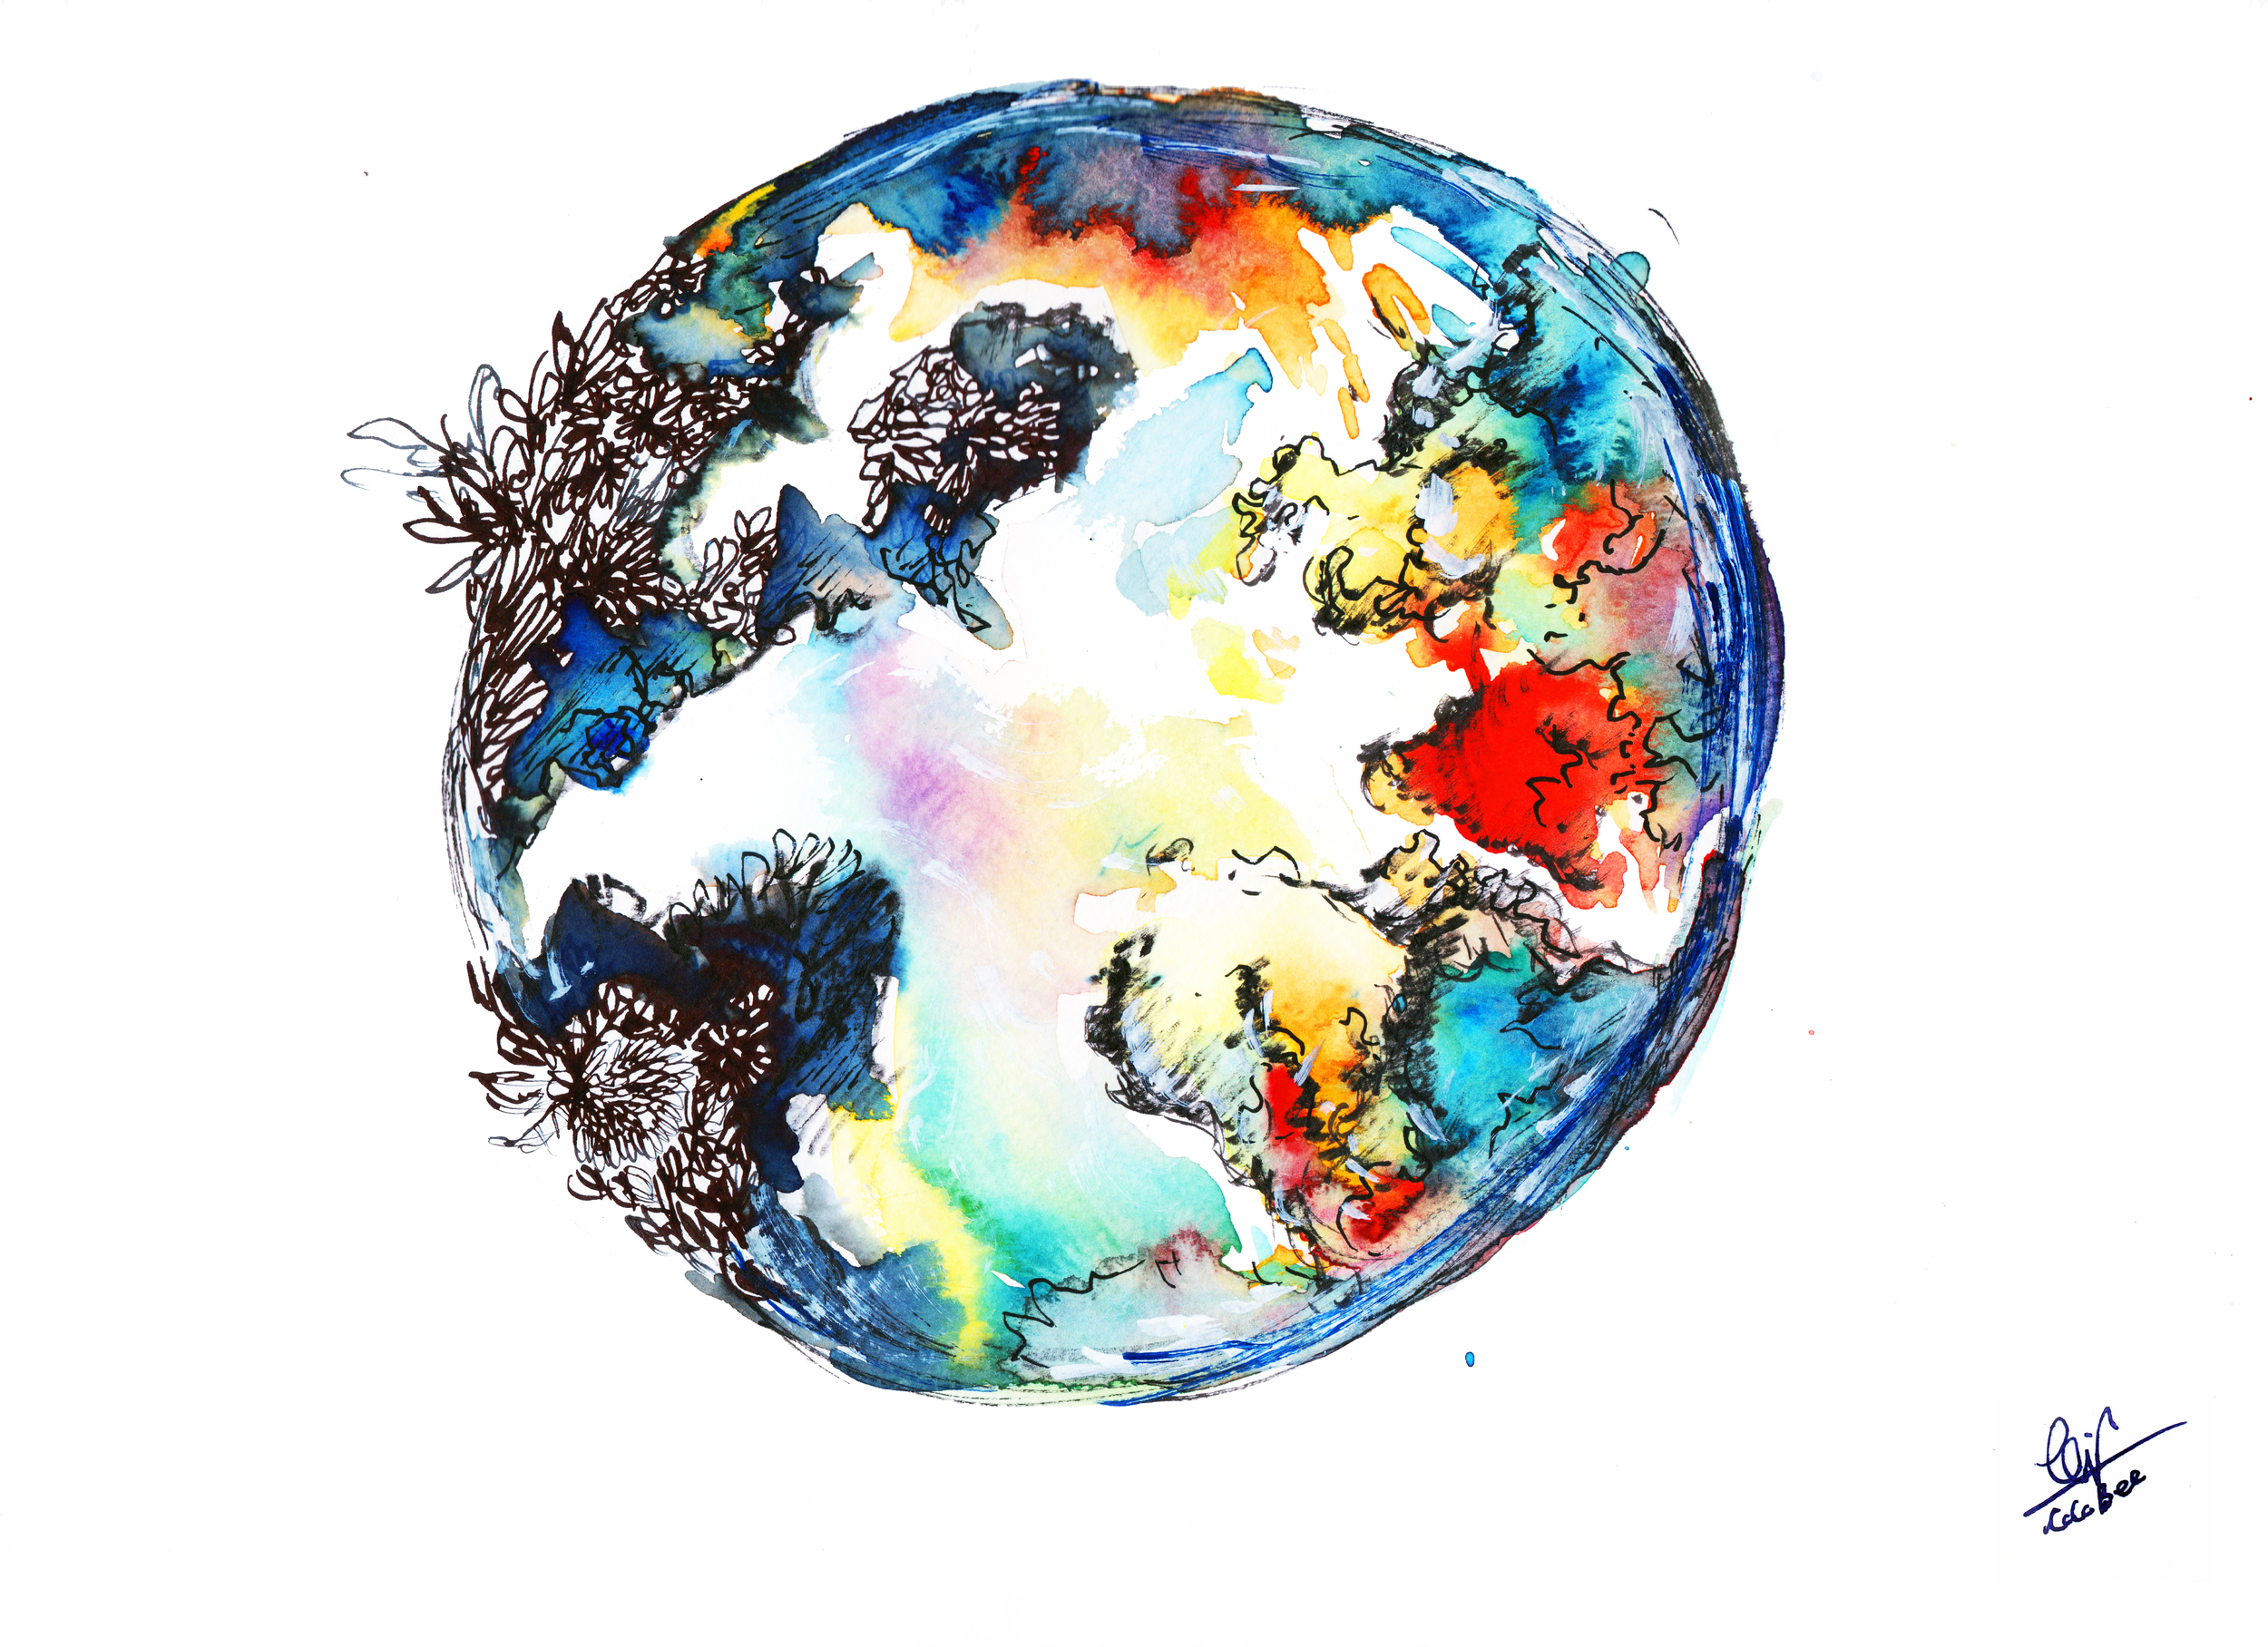 Healing Earth (Watercolor & Ink,February 2016)  for PROCURE ART